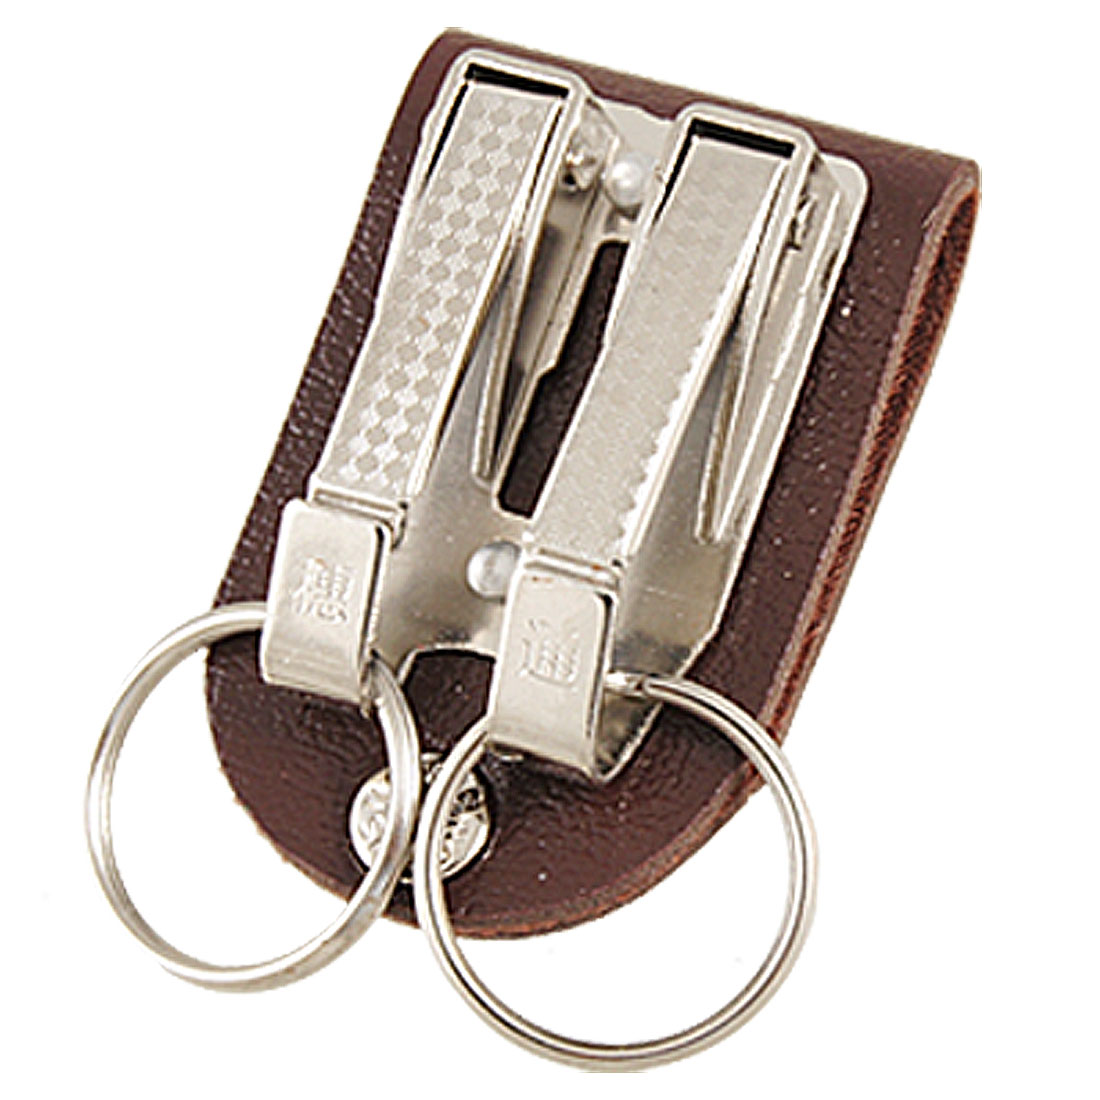 Faux Leather Belt Loop Silver Tone Metal Double Rings Keychain